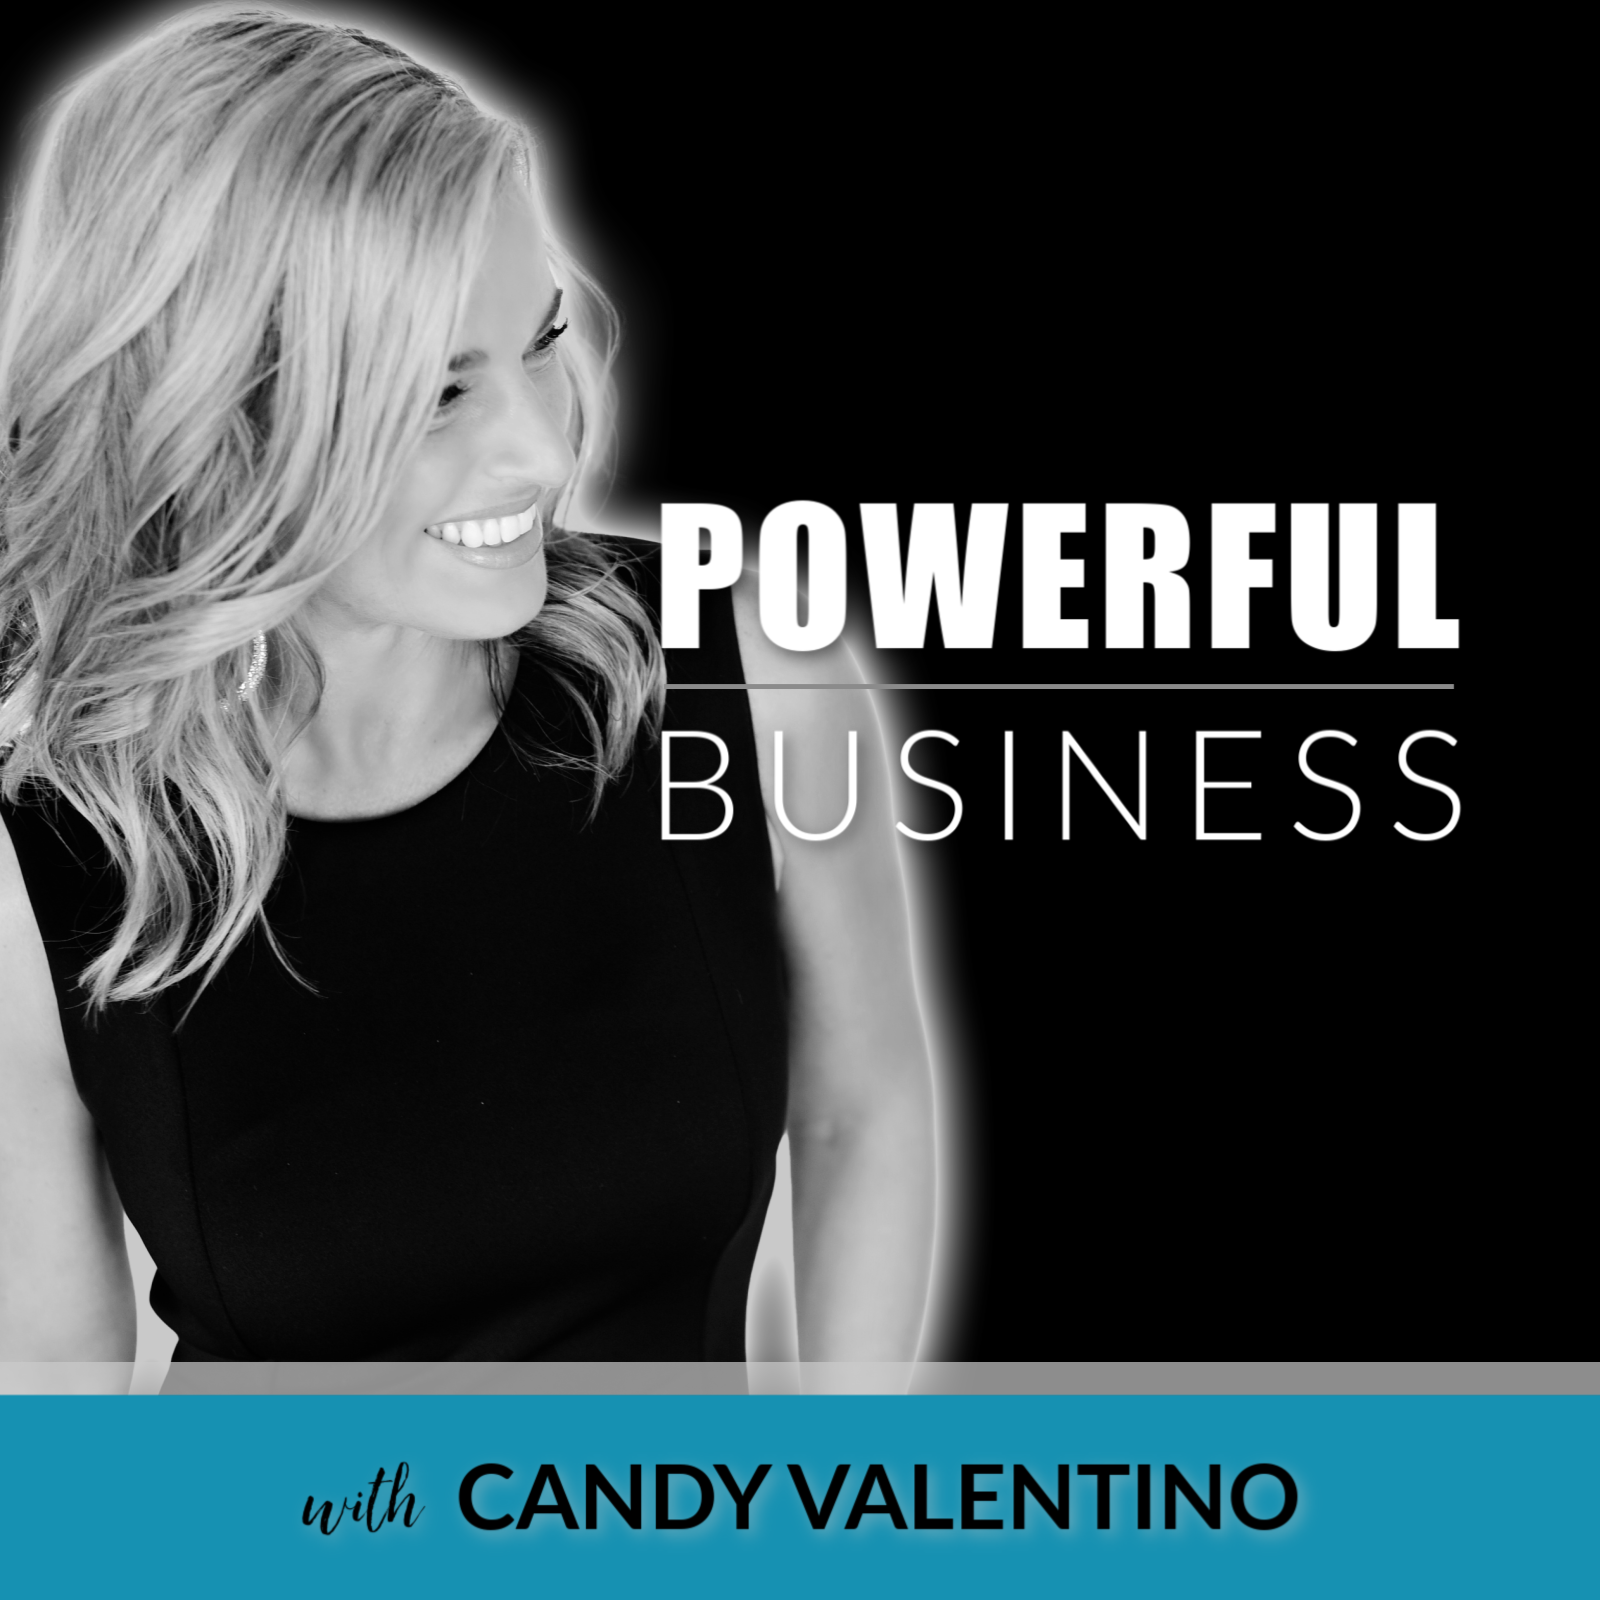 Artwork for Powerful Business Podcast with Candy Valentino - Dropping February 14th